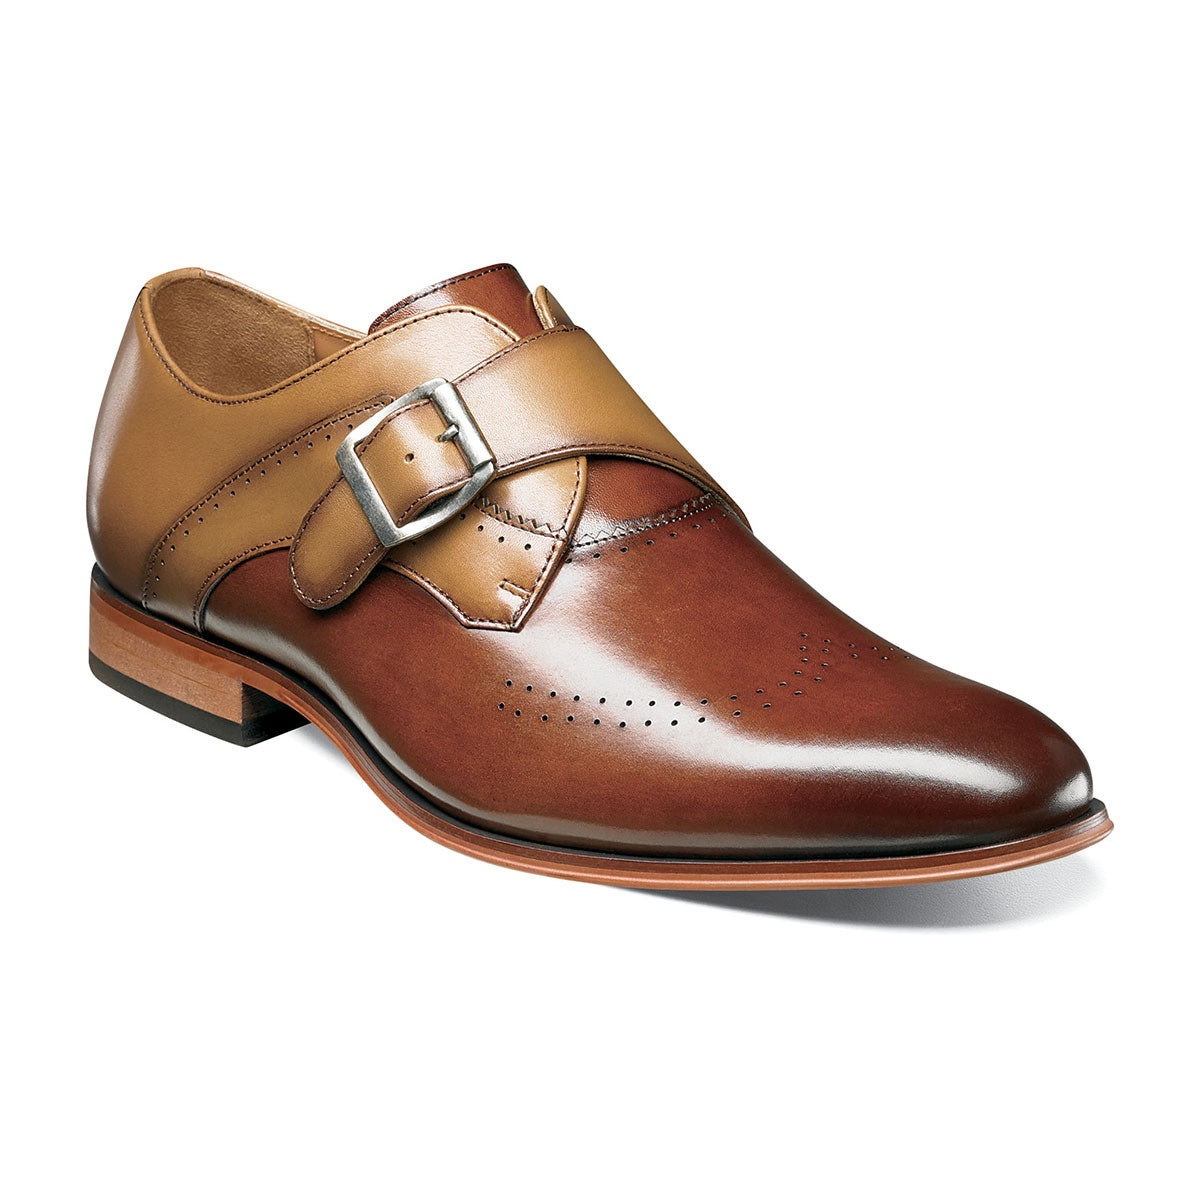 Stacy Adams Saxton Perfed Wingtip Monk Strap - Cognac Multi Shoes - Dapperfam.com